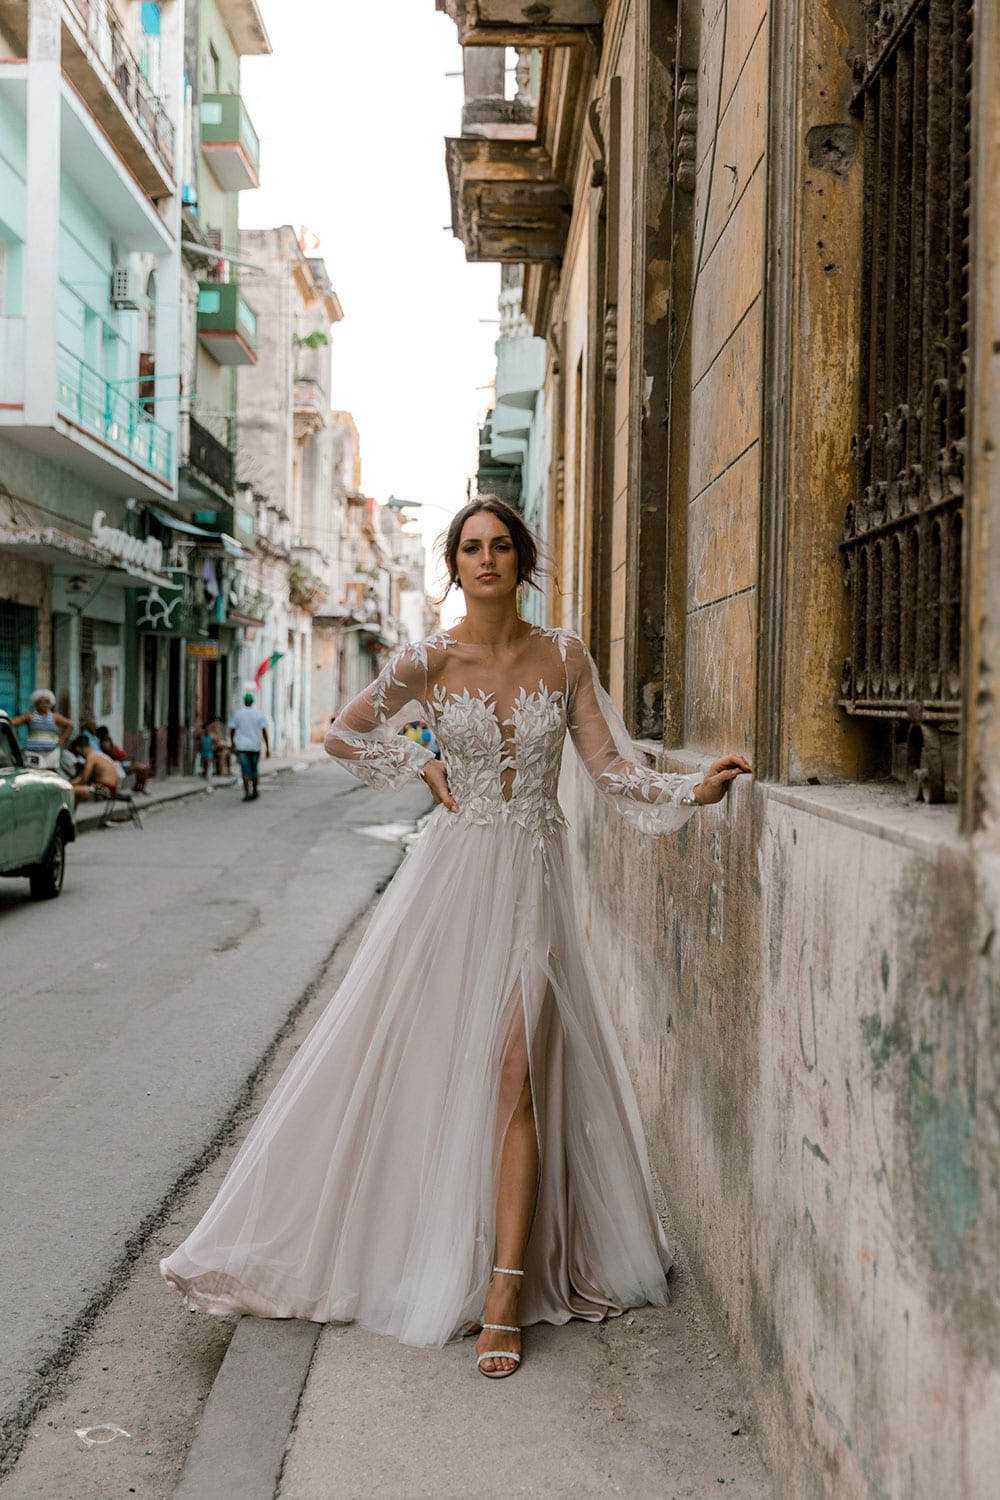 Model wearing Vinka Design Ivy Wedding Dress, a Silk and Tulle Wedding Gown with lace and Swarovski crystals walking on the streets of Havana